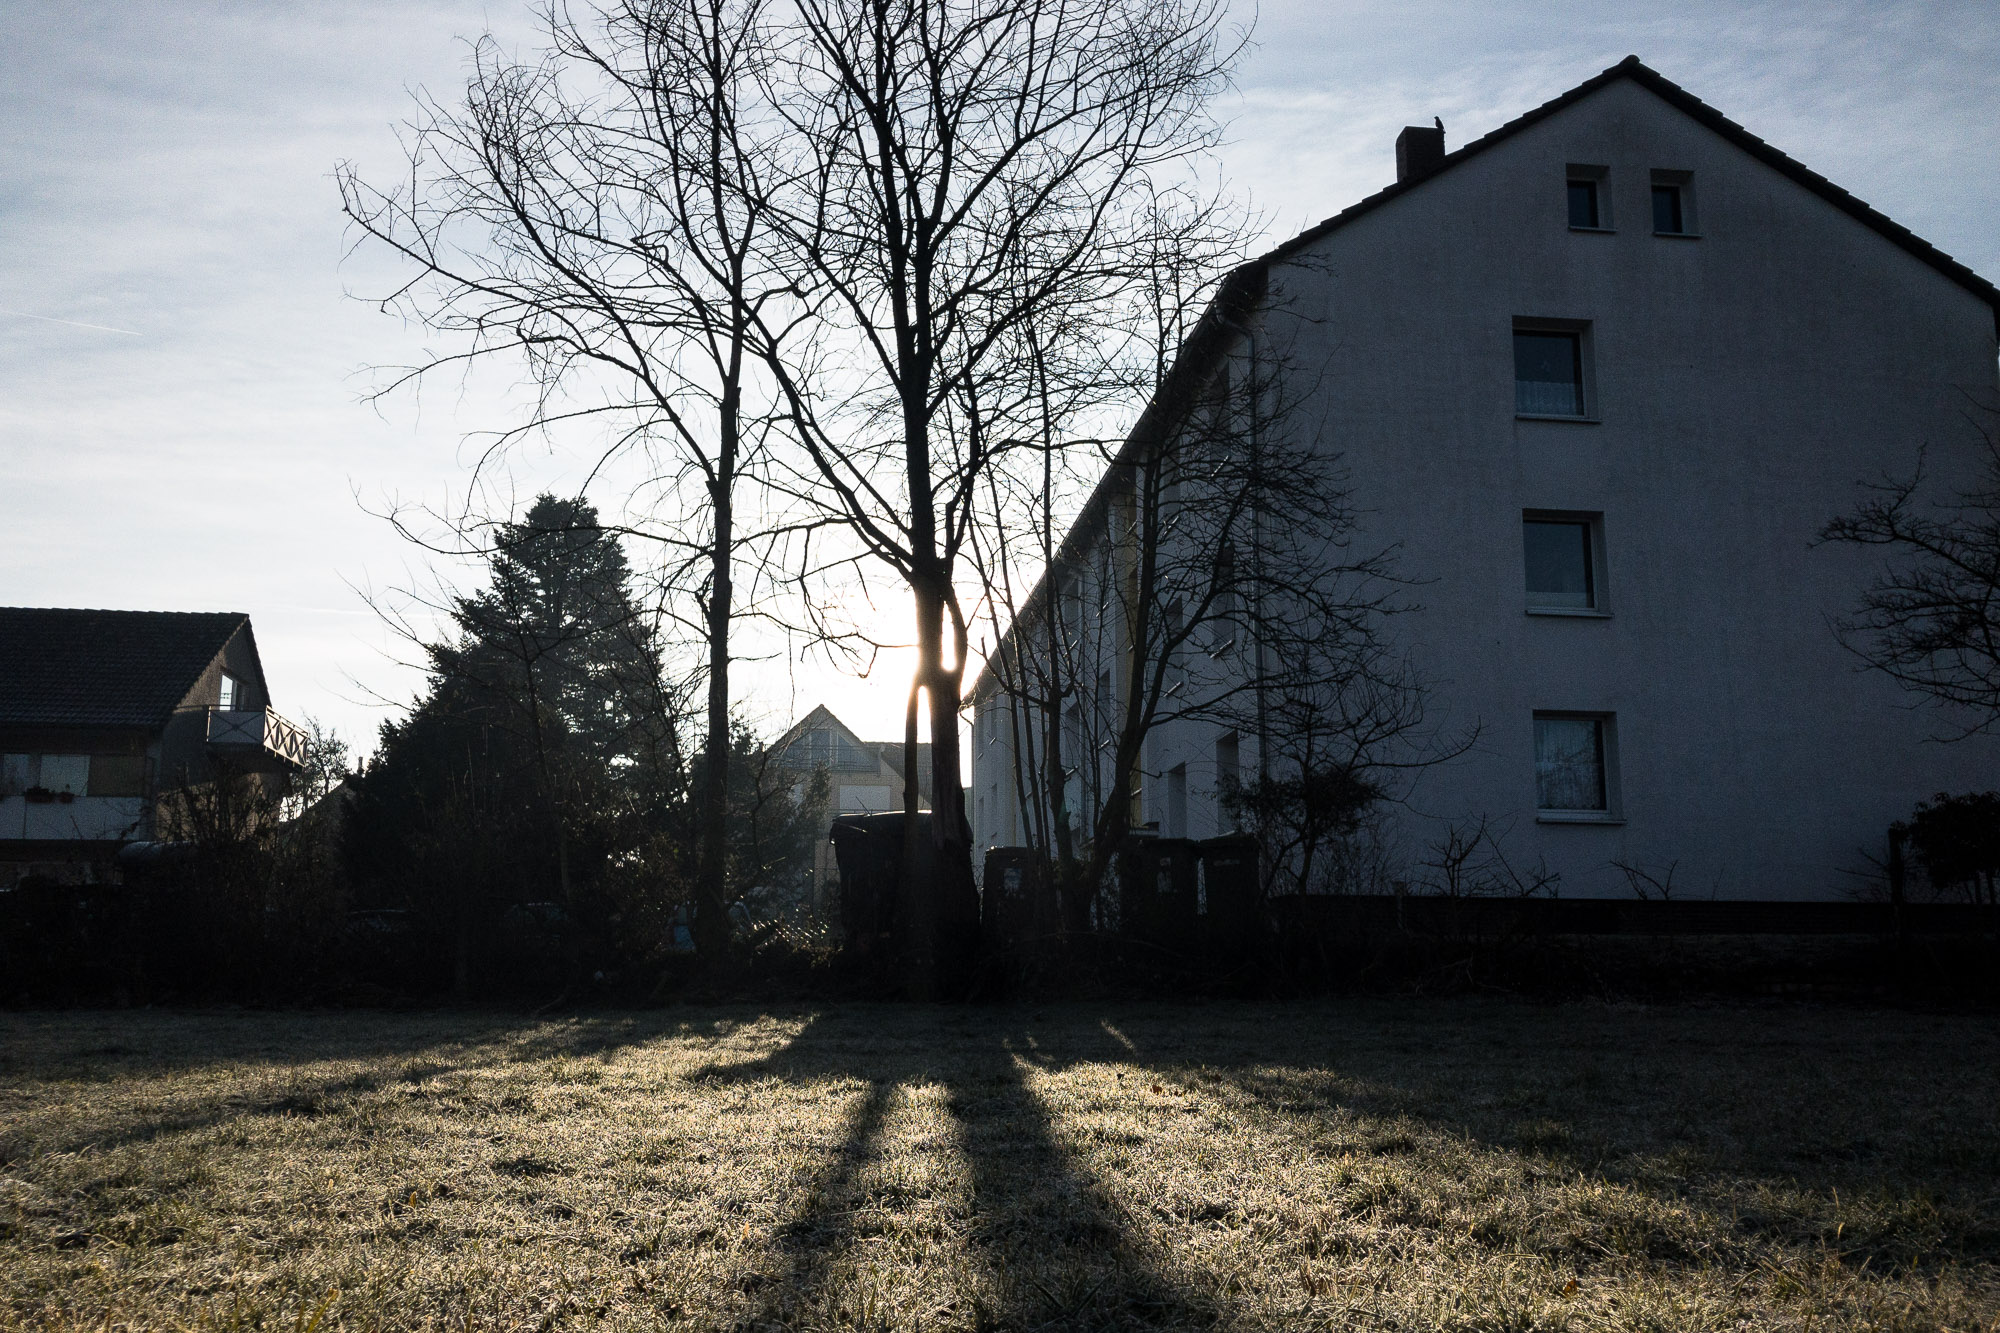 sun in Bad Nenndorf